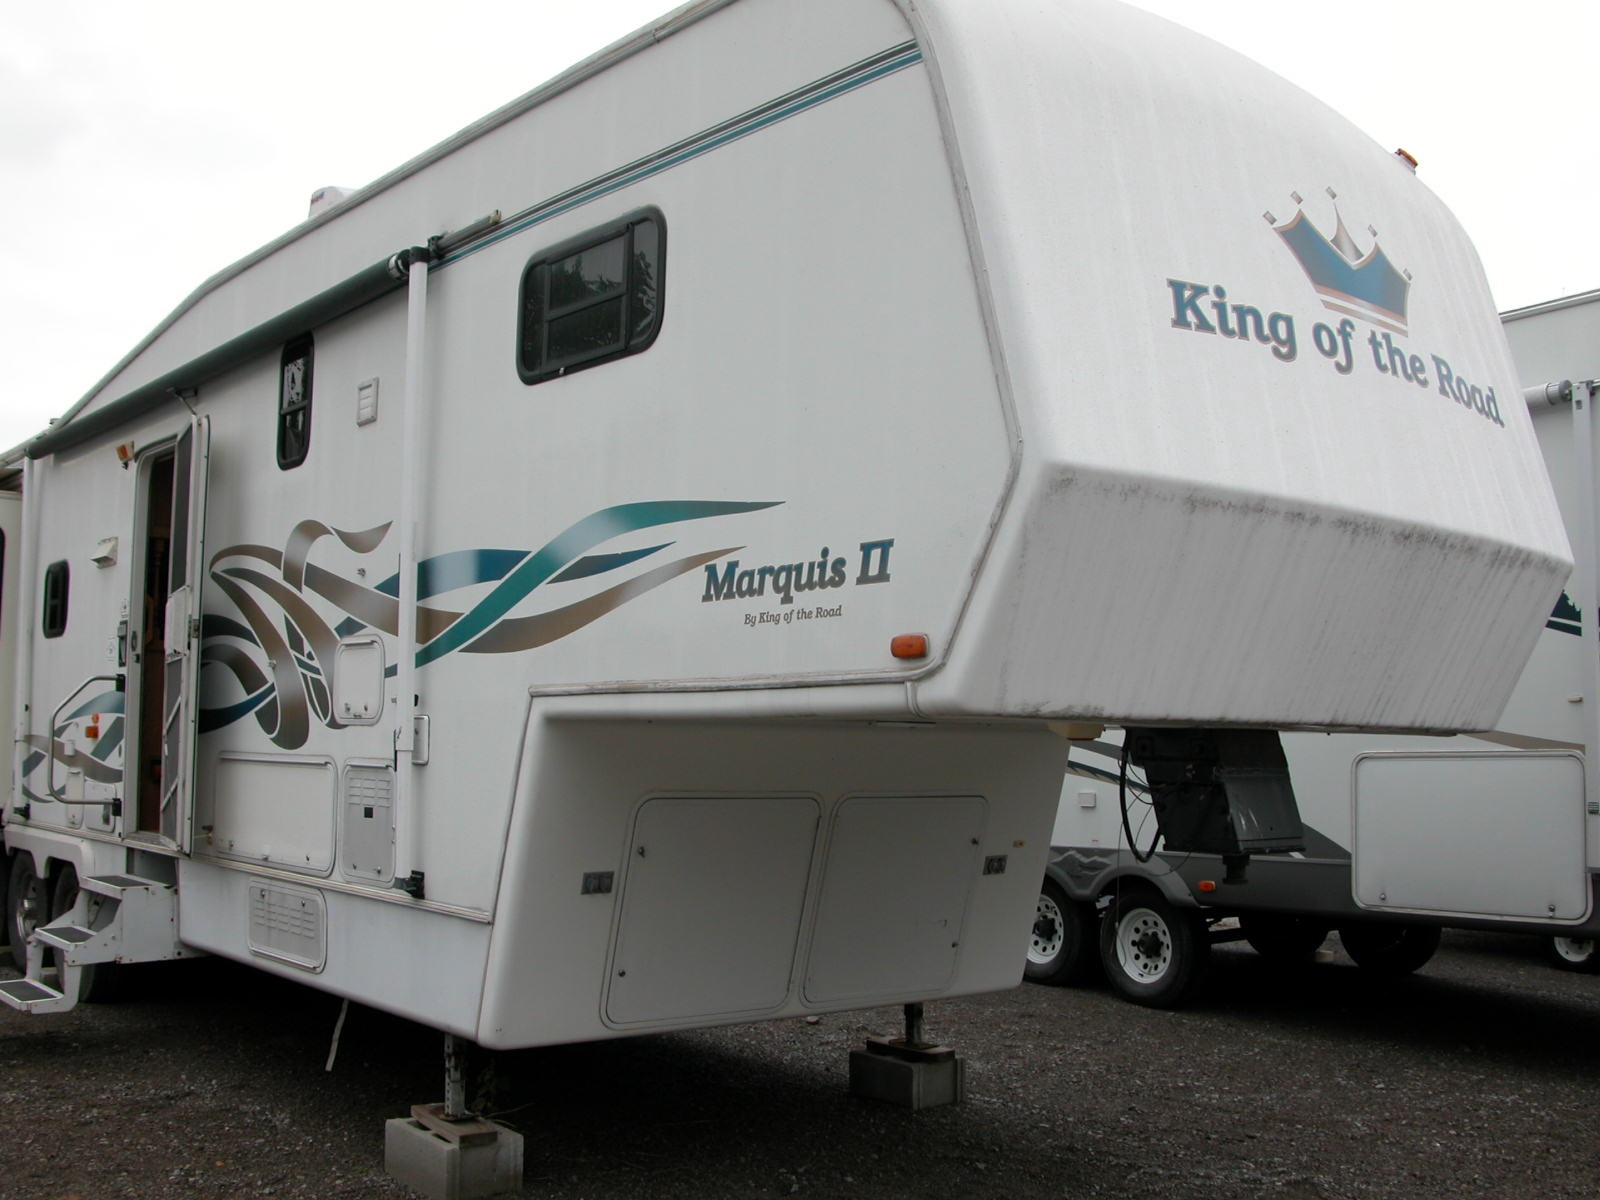 King Of The Road Marquis Ii 5th Wheel Camper